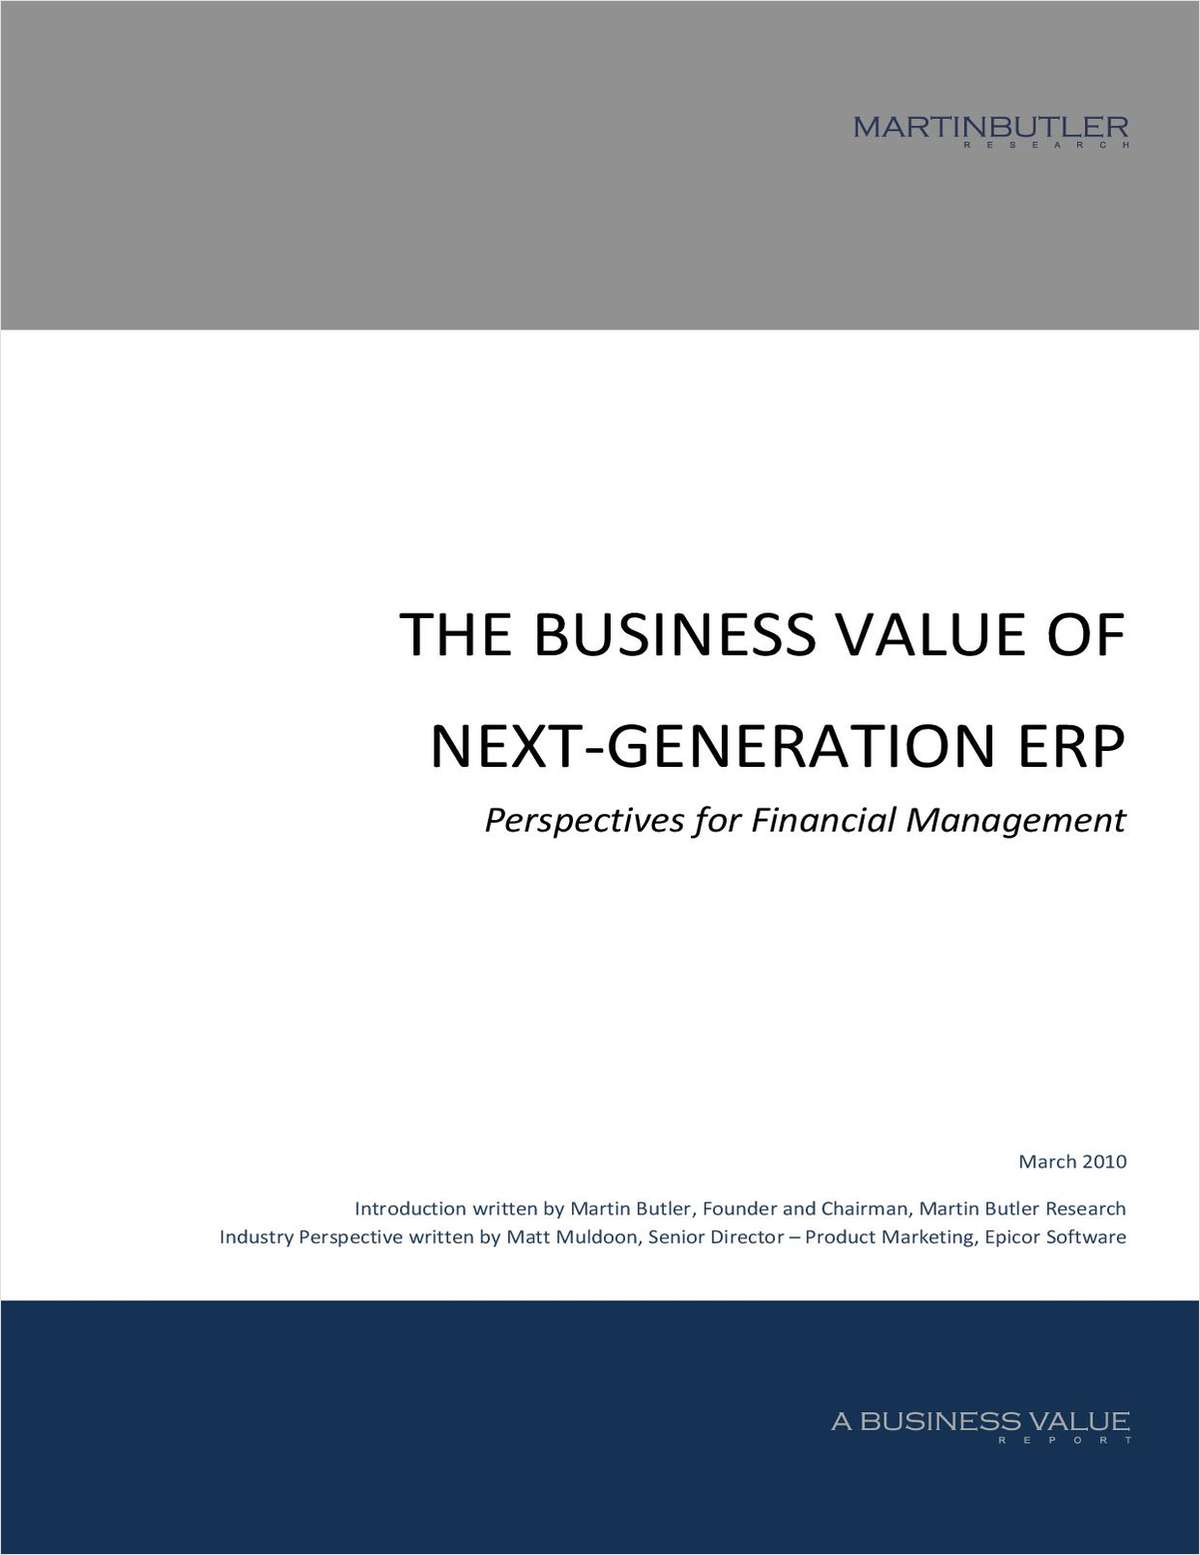 The Business Value of Next-Generation ERP: Perspectives for Financial Management in Manufacturing